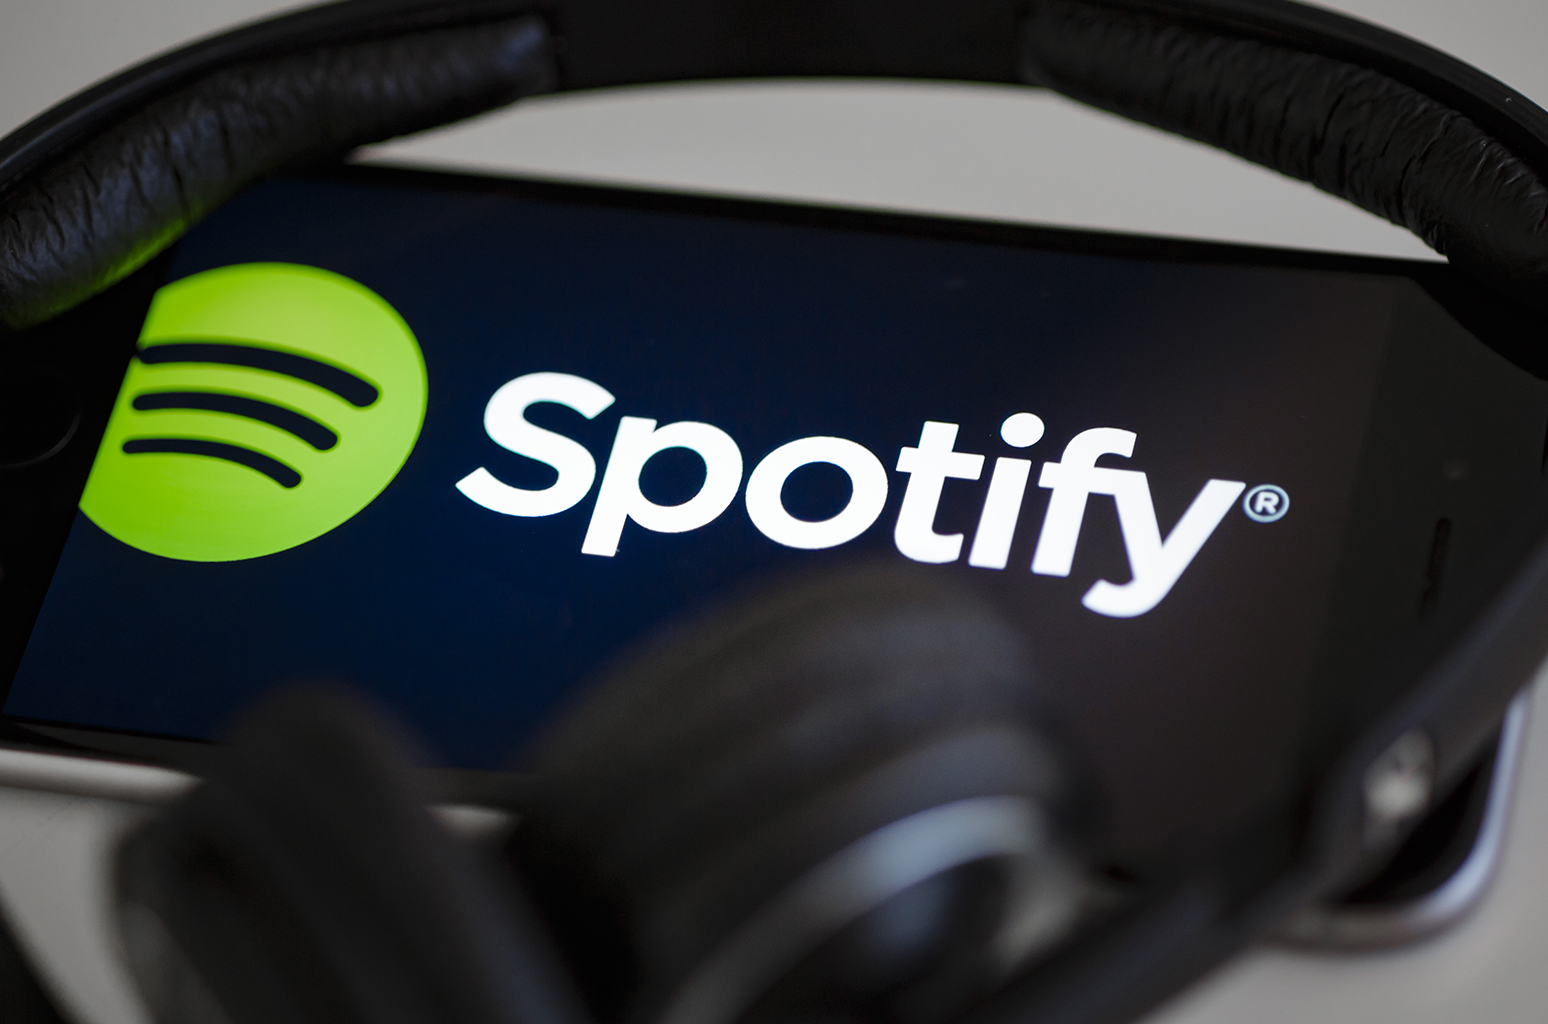 Samsung is partnering long-term with Spotify across its devices 3